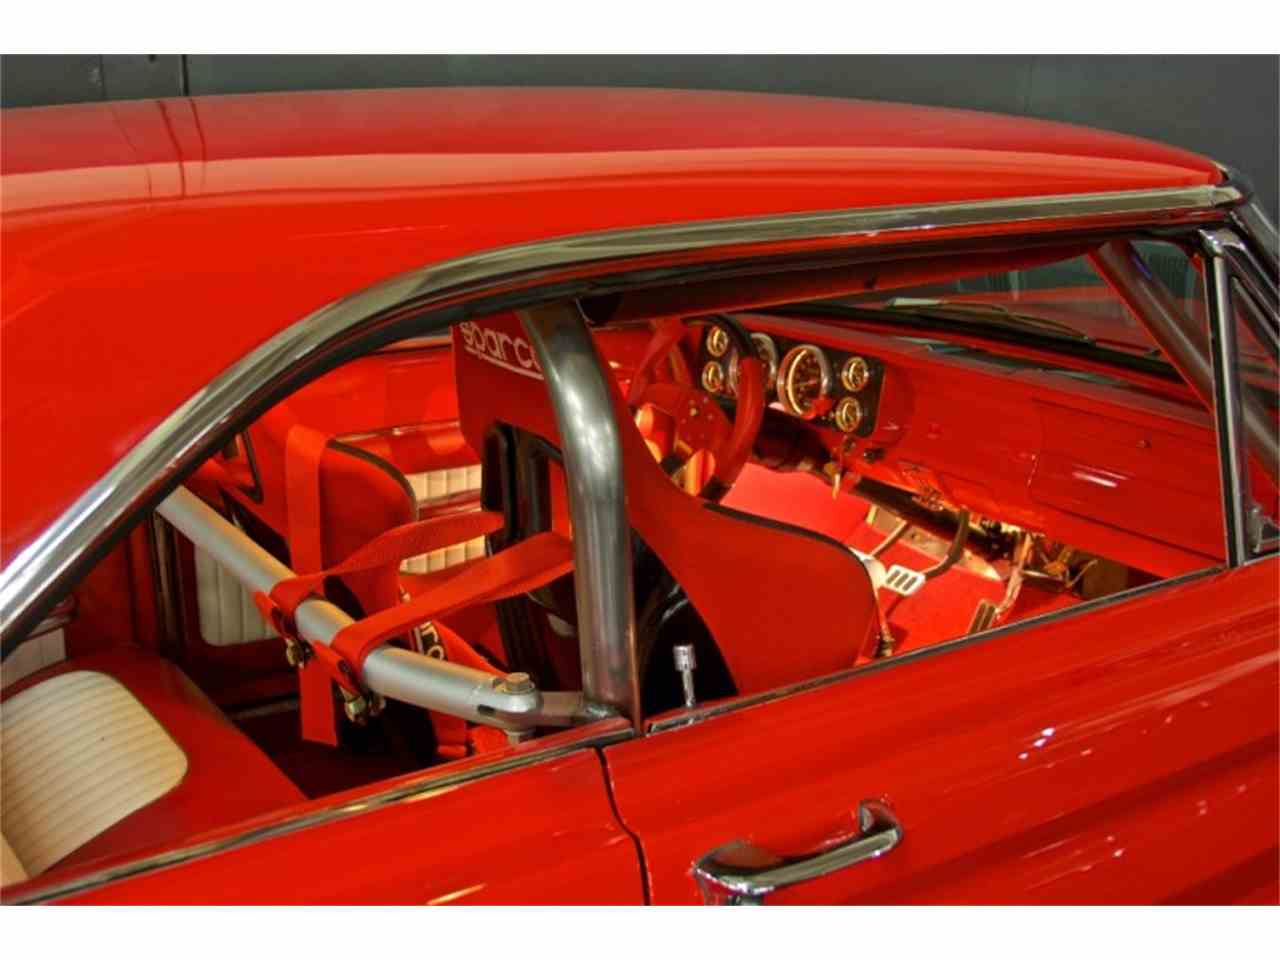 Large Picture of '64 Ford Falcon located in Milpitas California - $52,194.00 Offered by NBS Auto Showroom - LSP9